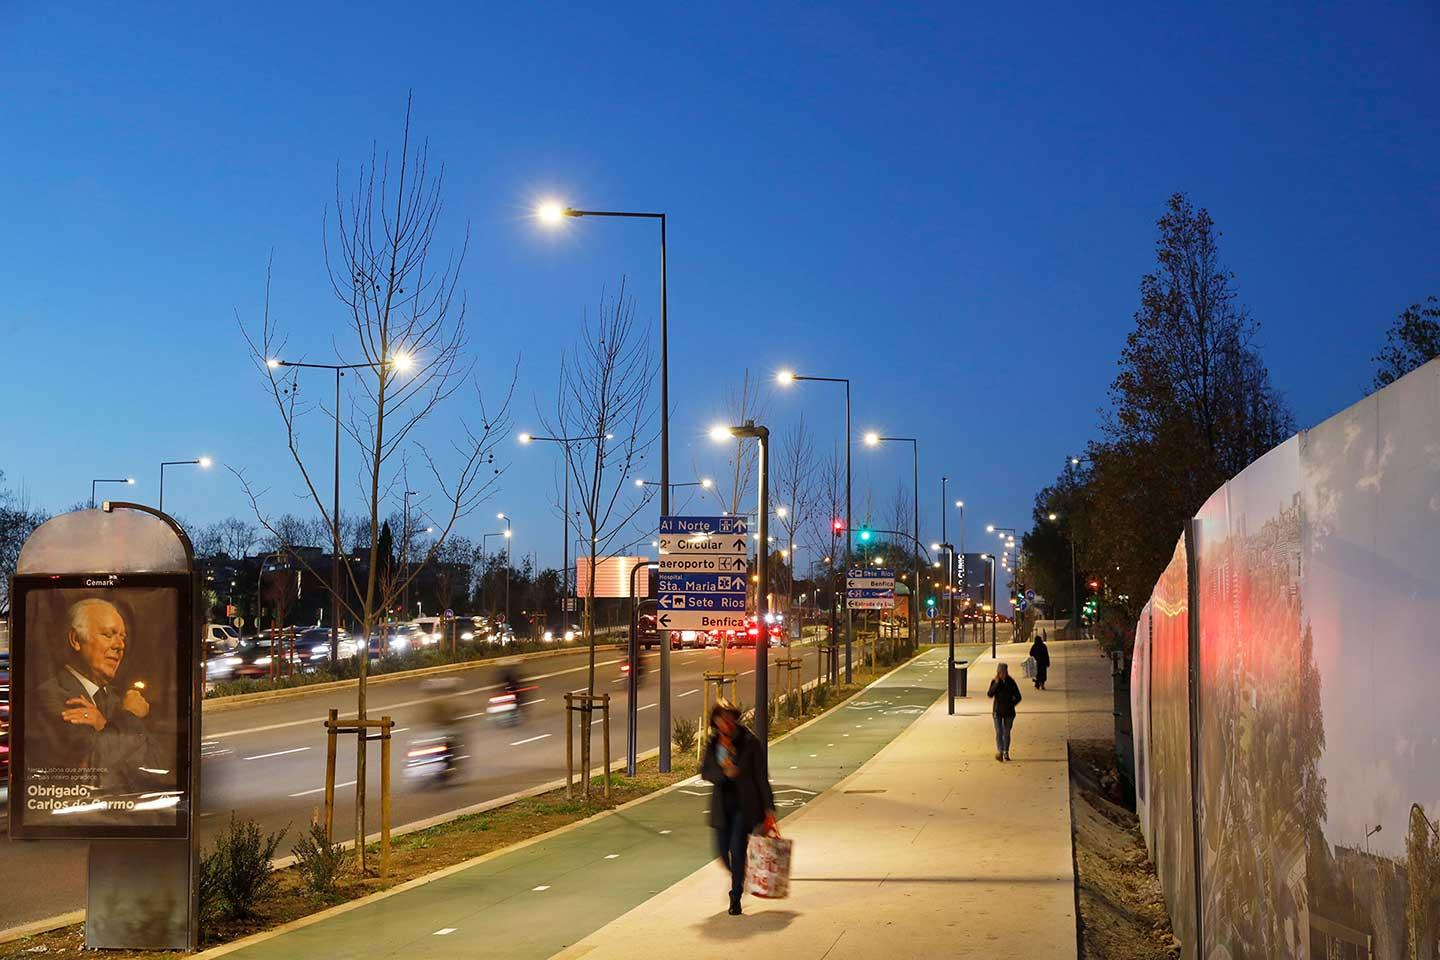 IZYLUM road luminaire has improved safety for pedestrian and cyclists crossing Praça de España in Lisbon while reducing operating costs